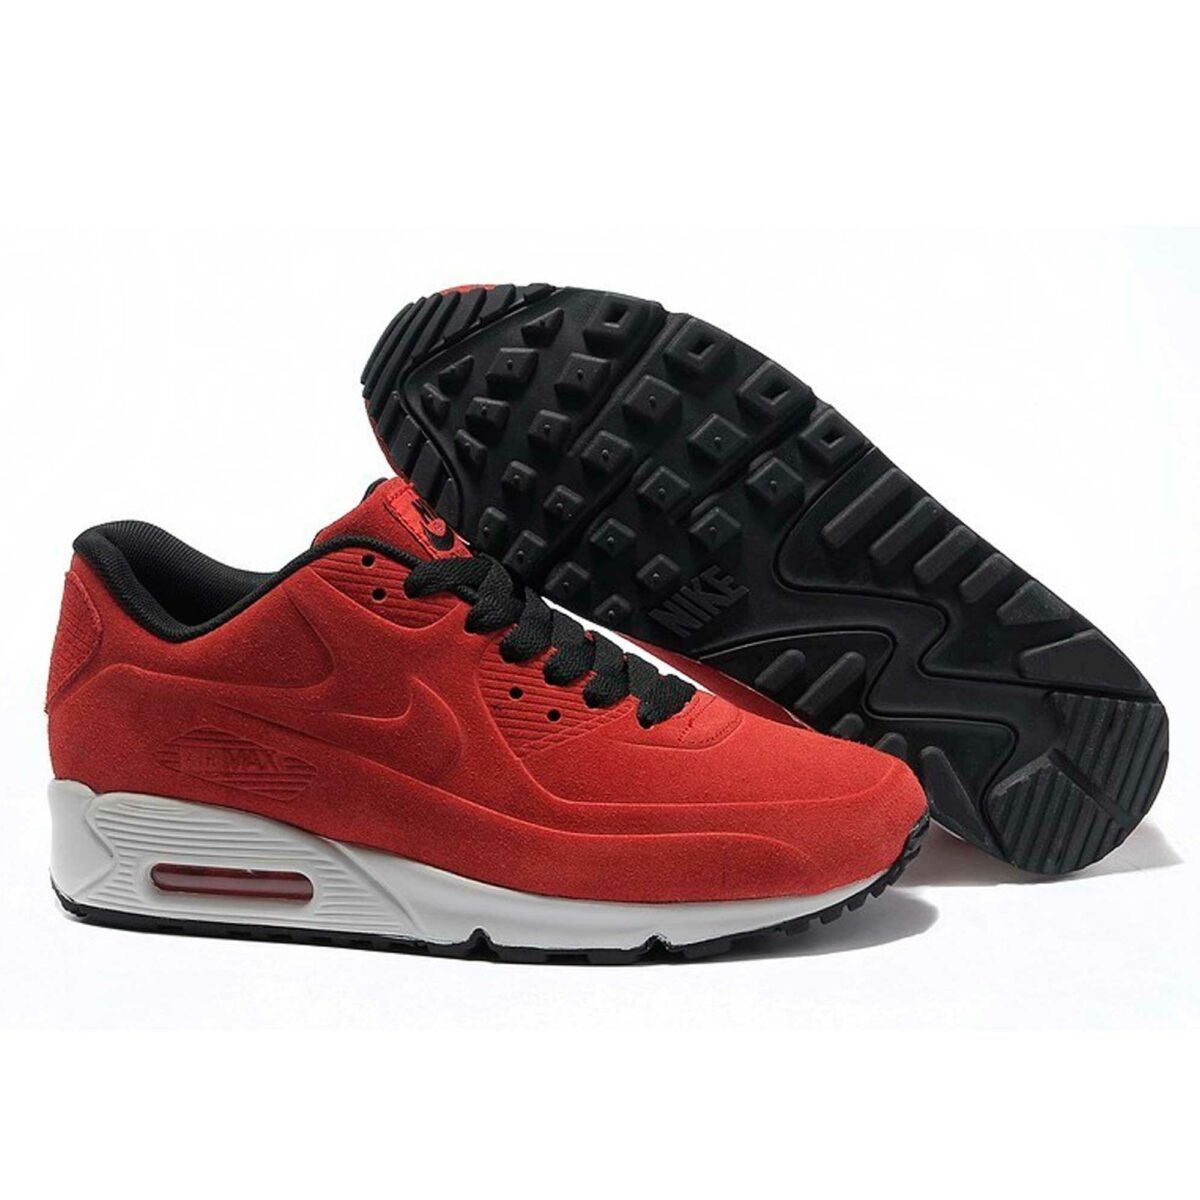 nike air max 90 VT red black 472489_601 купить